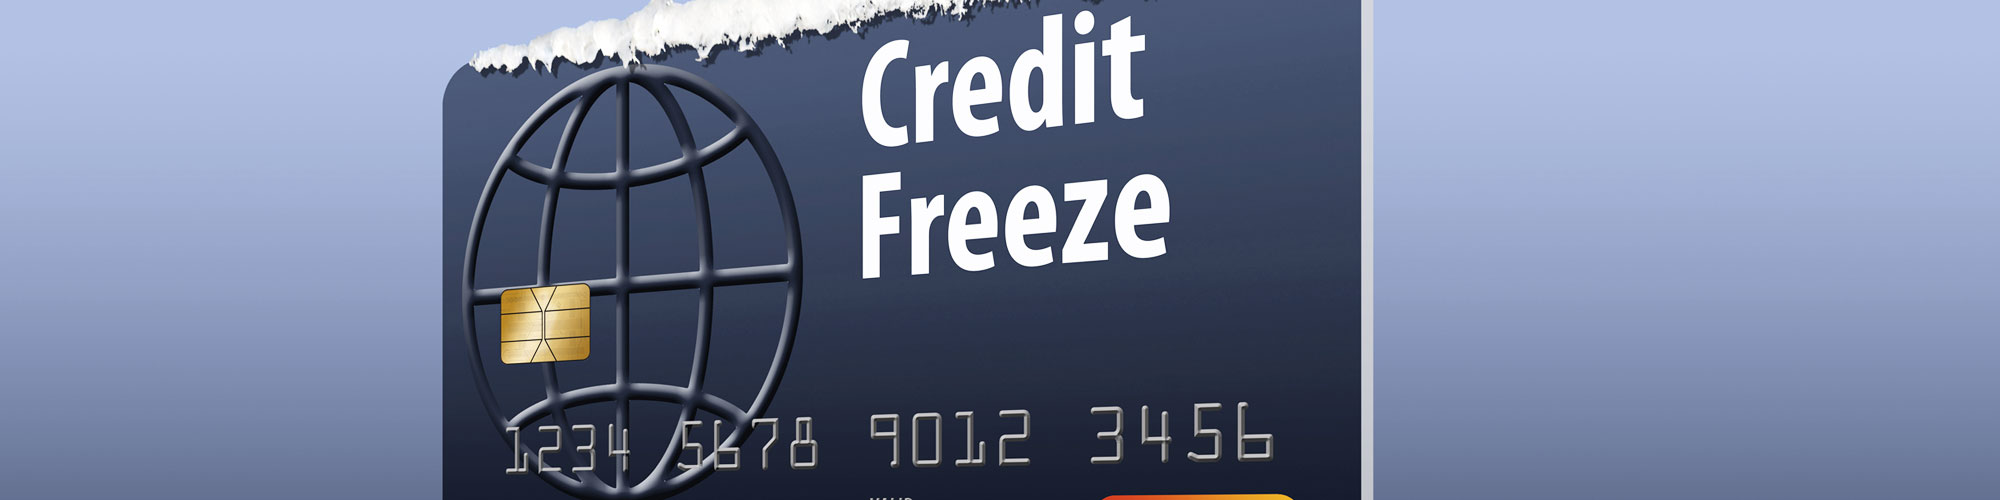 Take These Simple Steps To Lift An Experian Credit Freeze